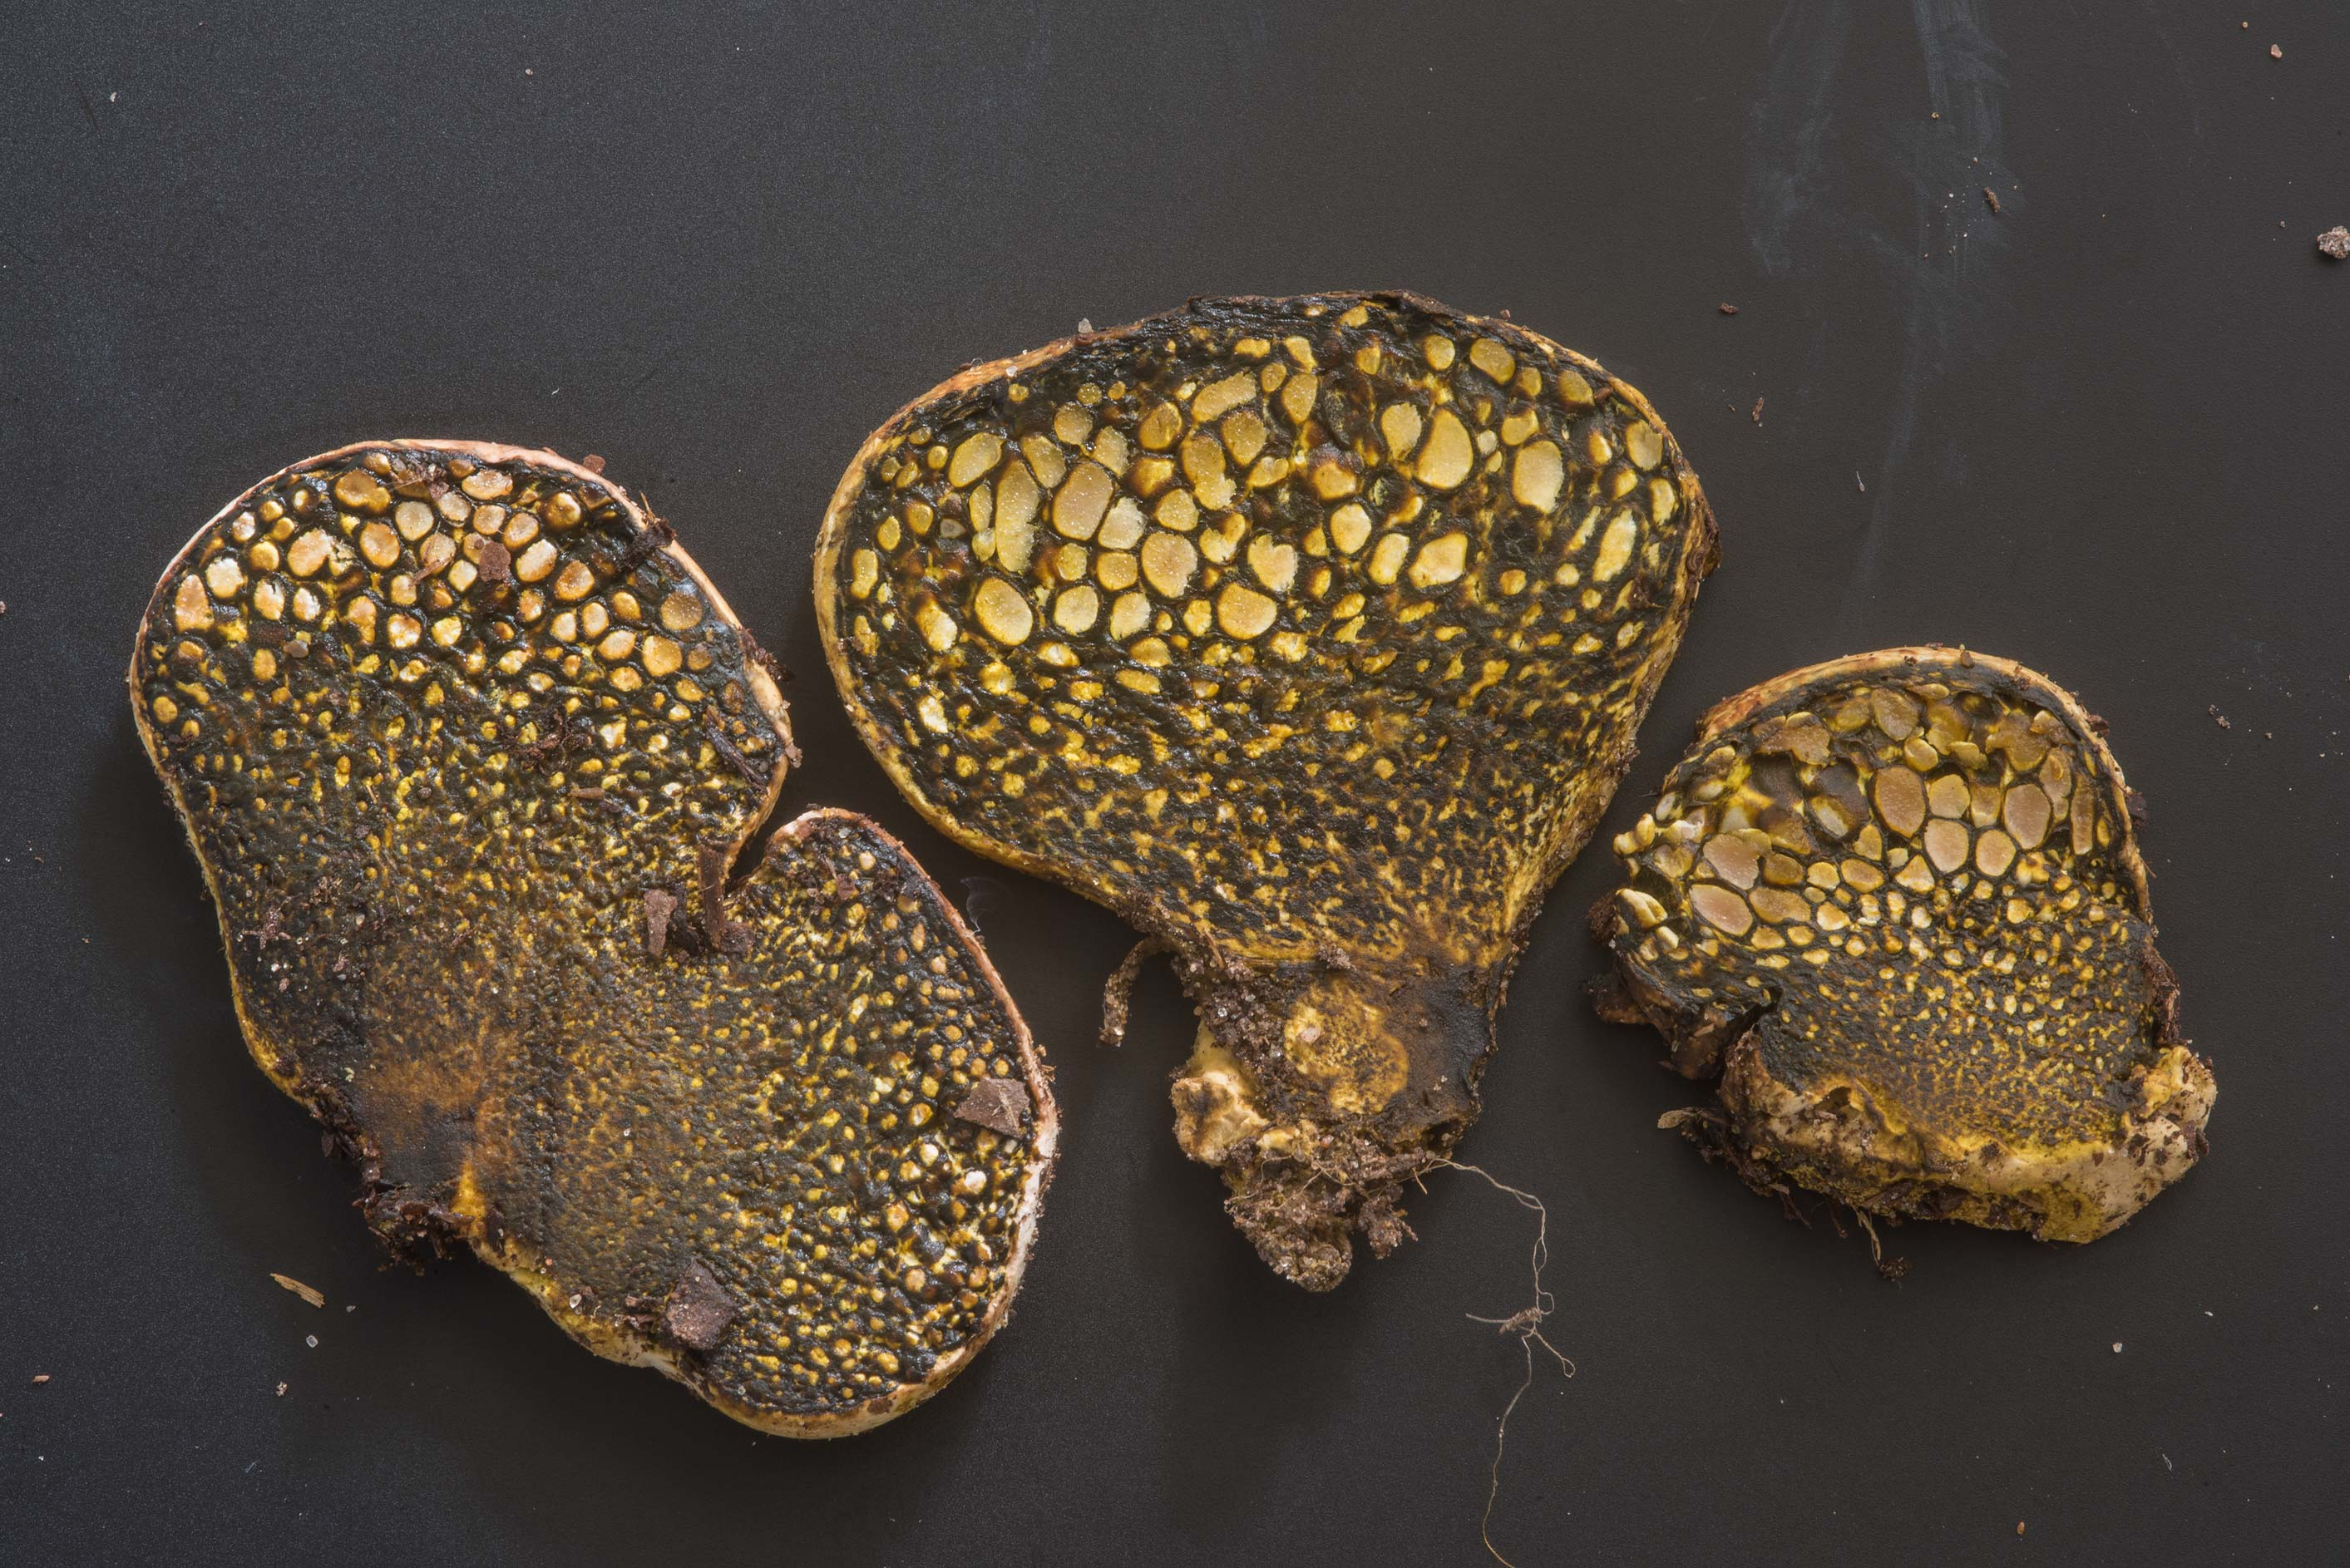 Dissectedorse dung fungus (dyeball mushroom...M University. College Station, Texas